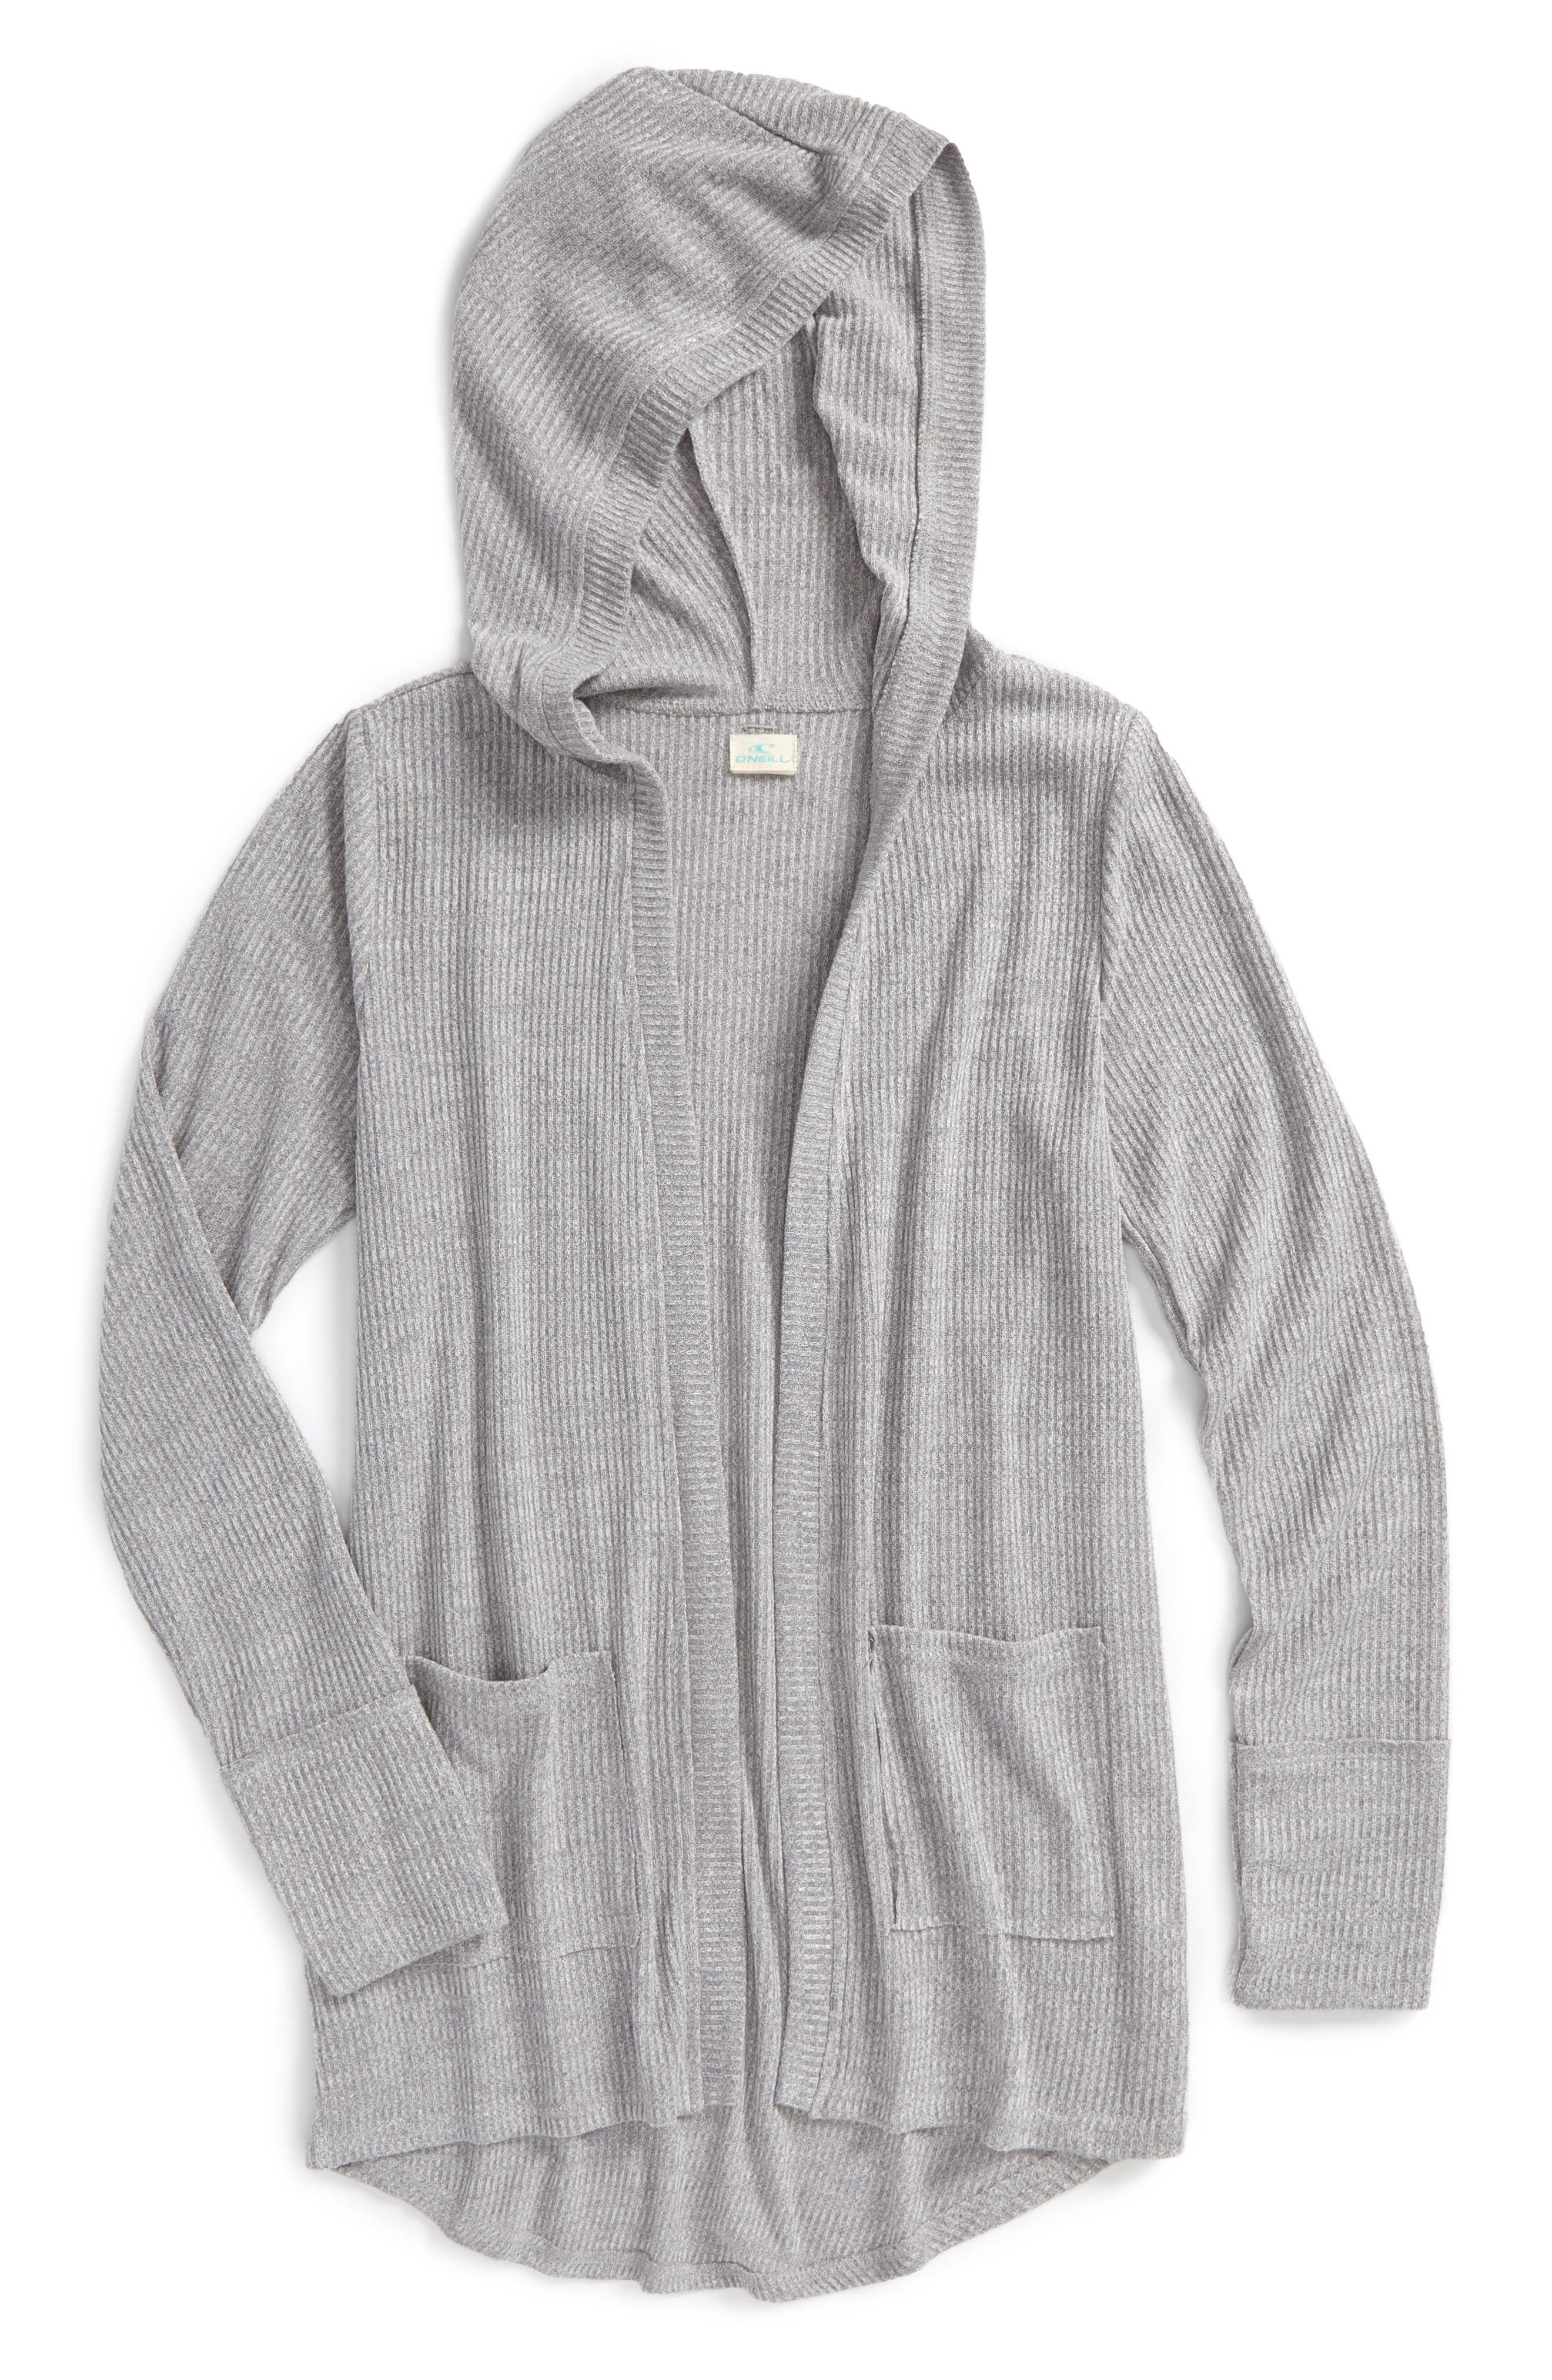 Blizzard Knit Hooded Cardigan,                         Main,                         color, 020